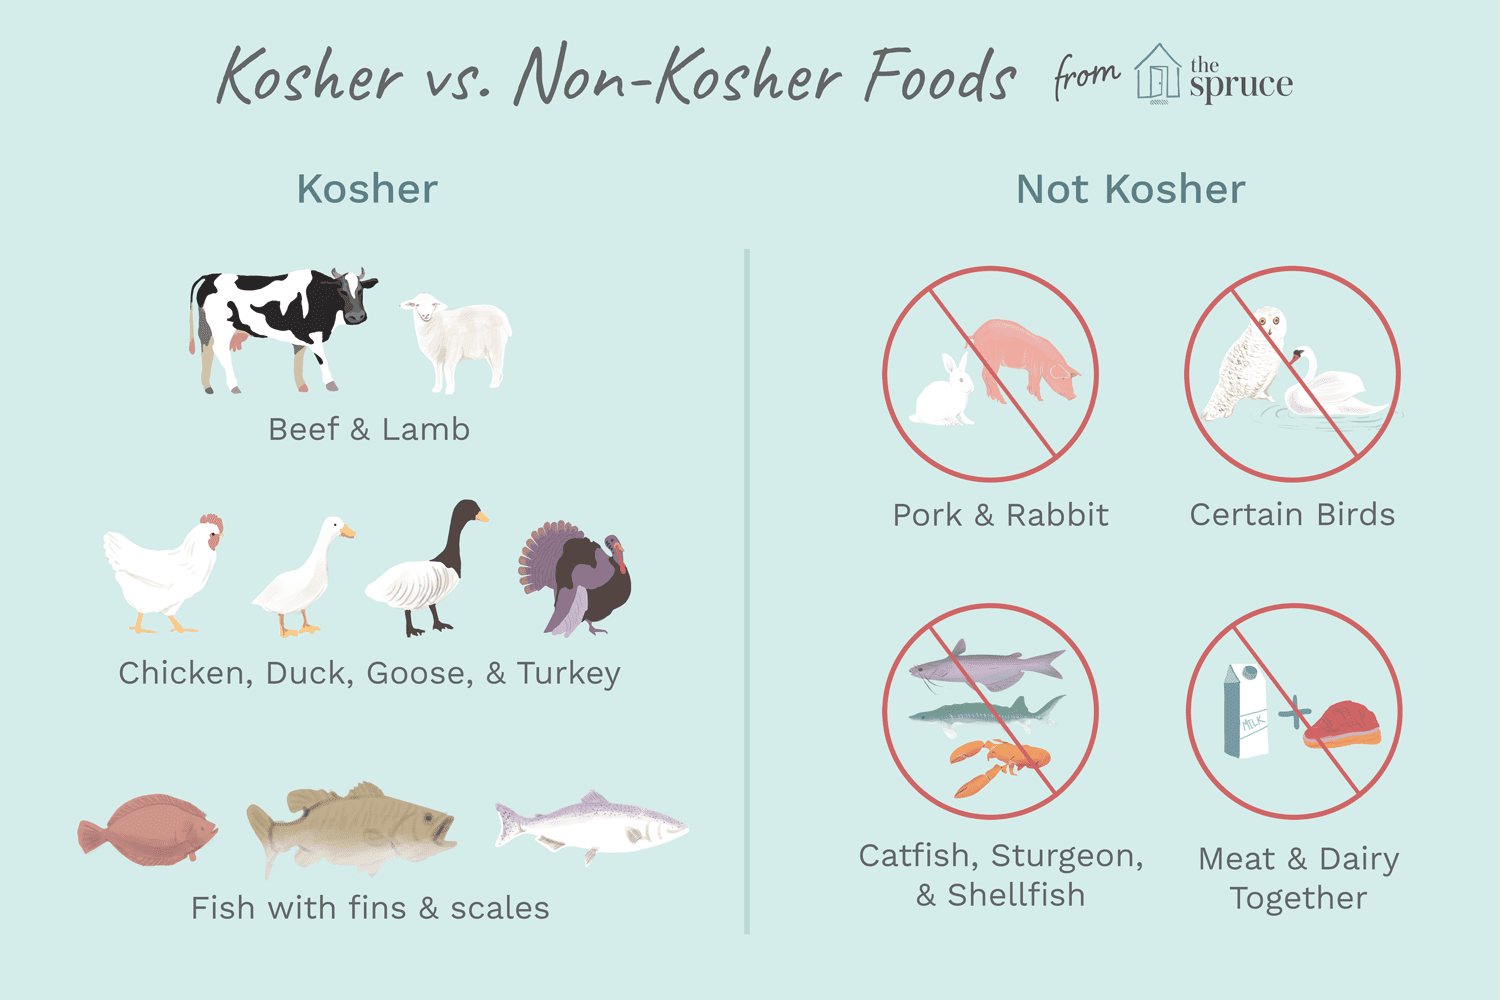 What Makes Certain Foods Kosher?